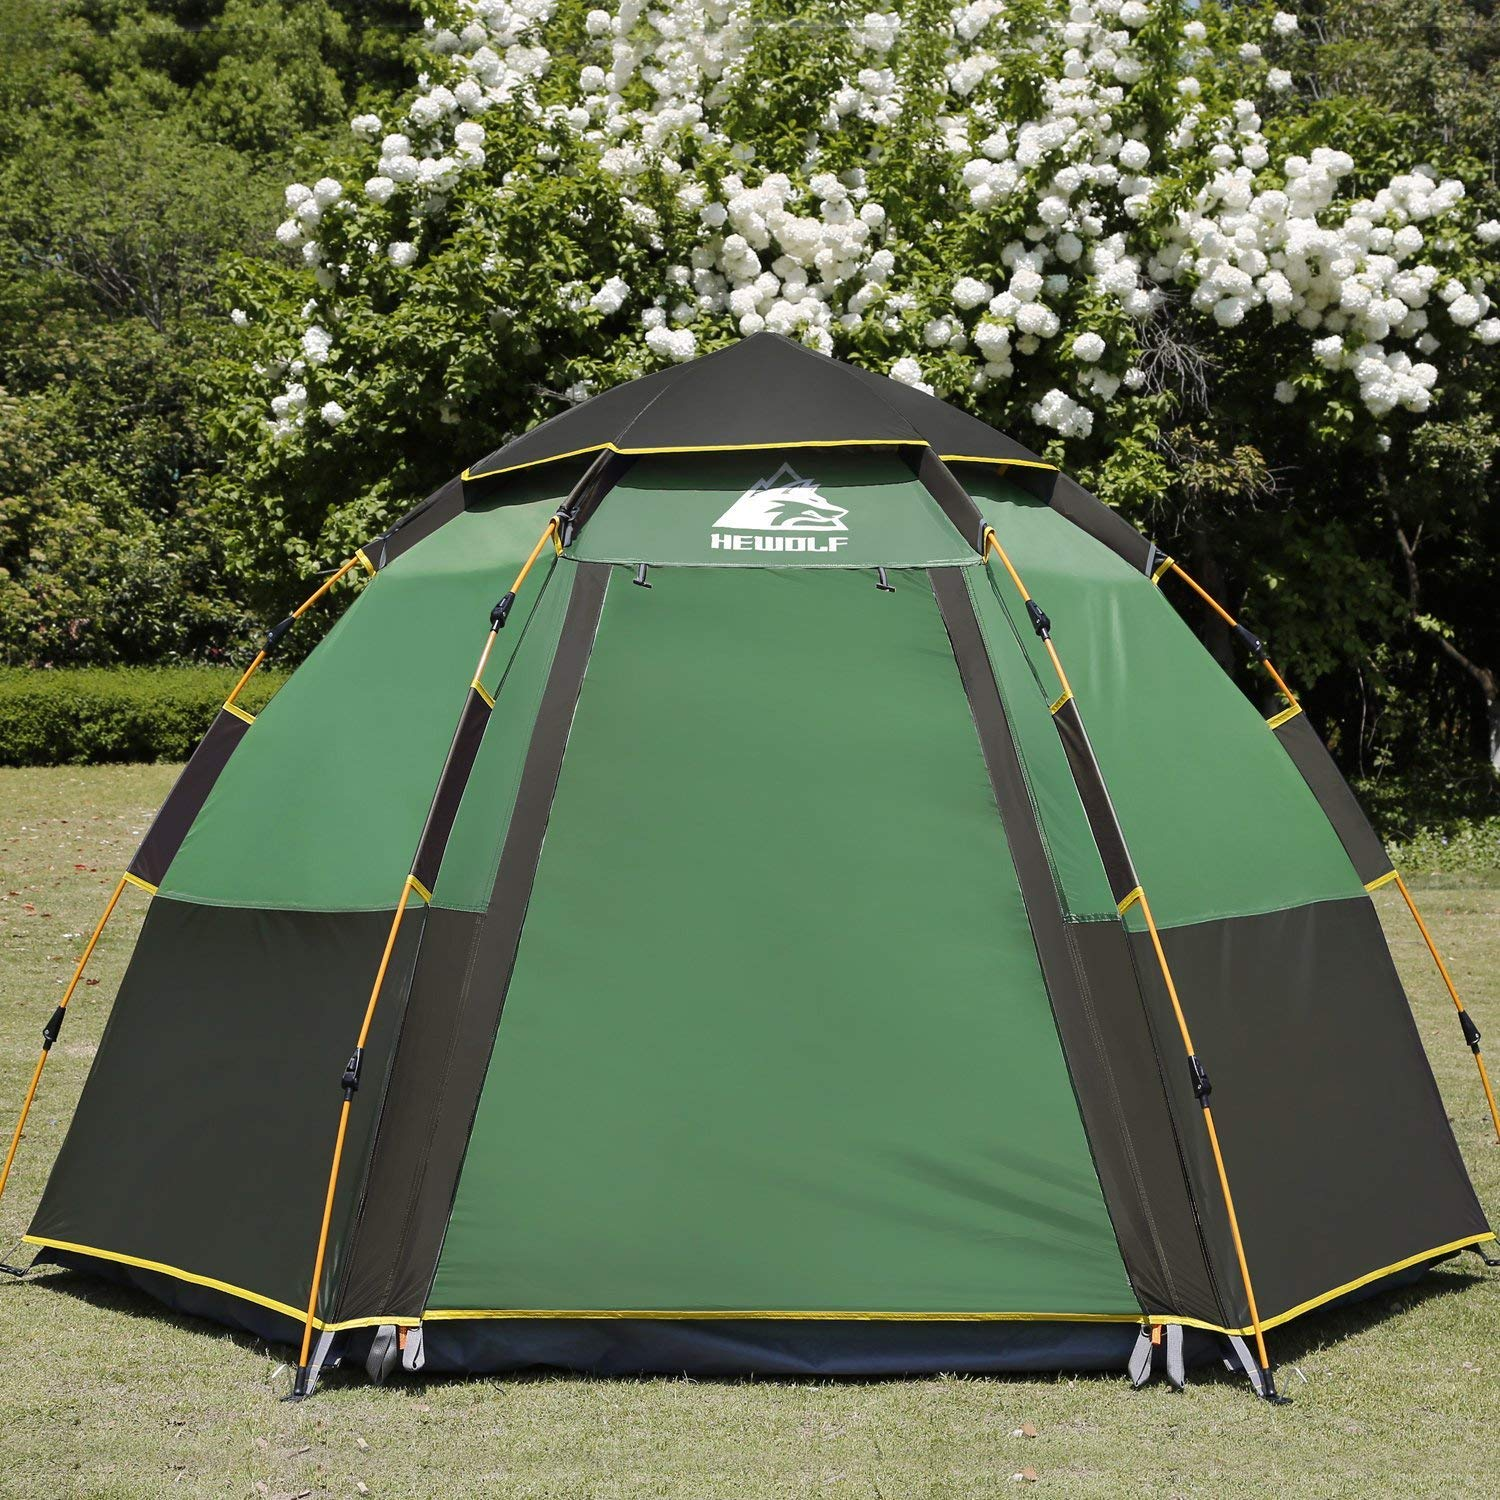 [Hewolf] [Hewolf Camping Tents 2-4 Person [Instant Tent] Waterproof [Double Layer] [Quick Set up] Family Beach Dome Tent UV Protection with Carry Bag] (並行輸入品) 43560 Green B07JVRF99X